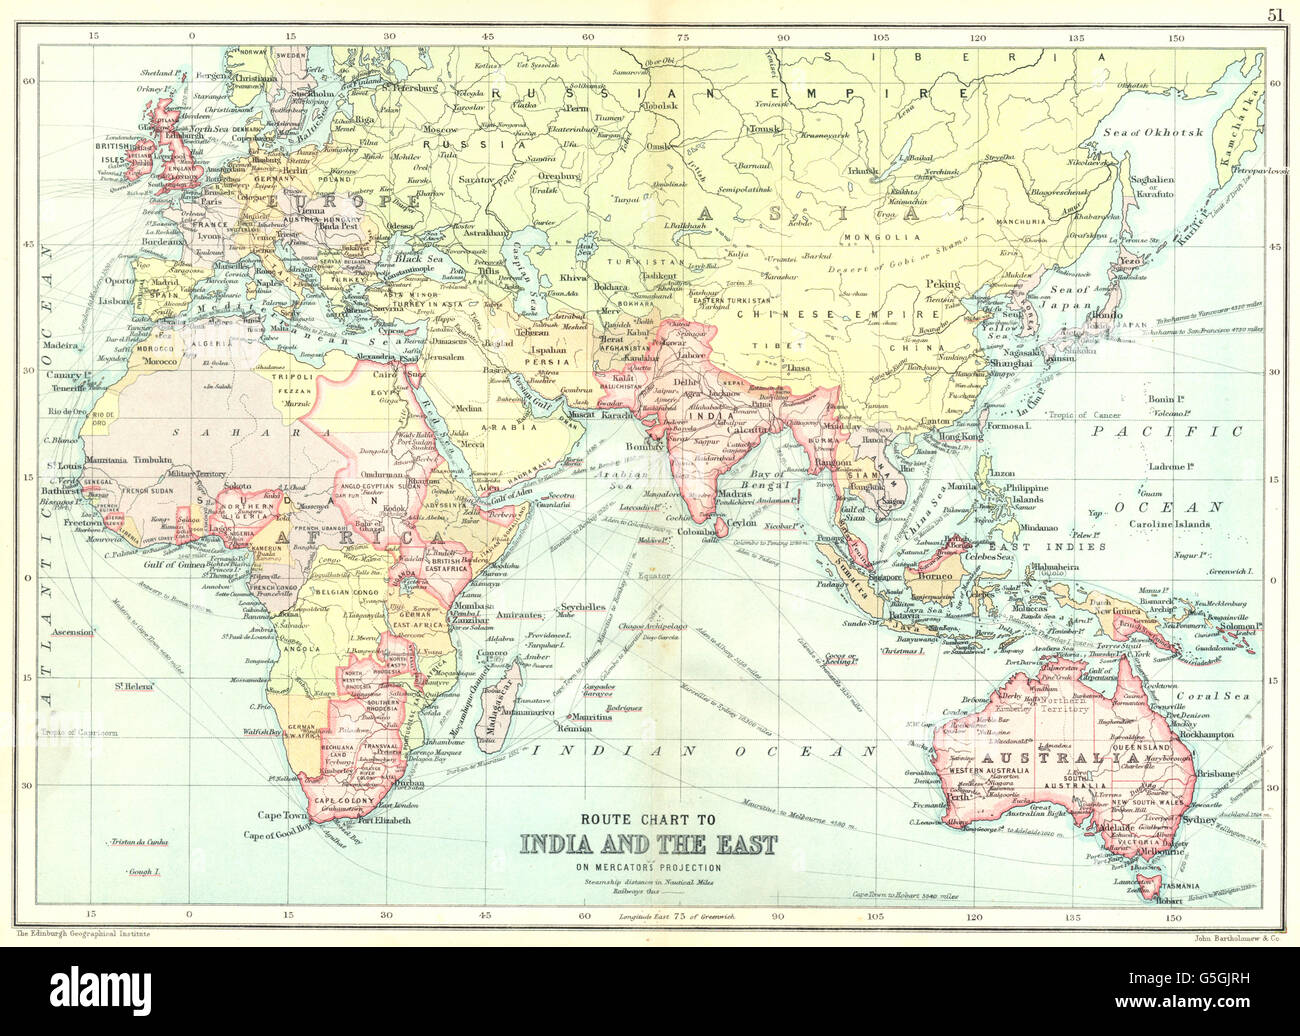 British empire route chart to india far east australia new stock british empire route chart to india far east australia new zealand 1909 map gumiabroncs Image collections